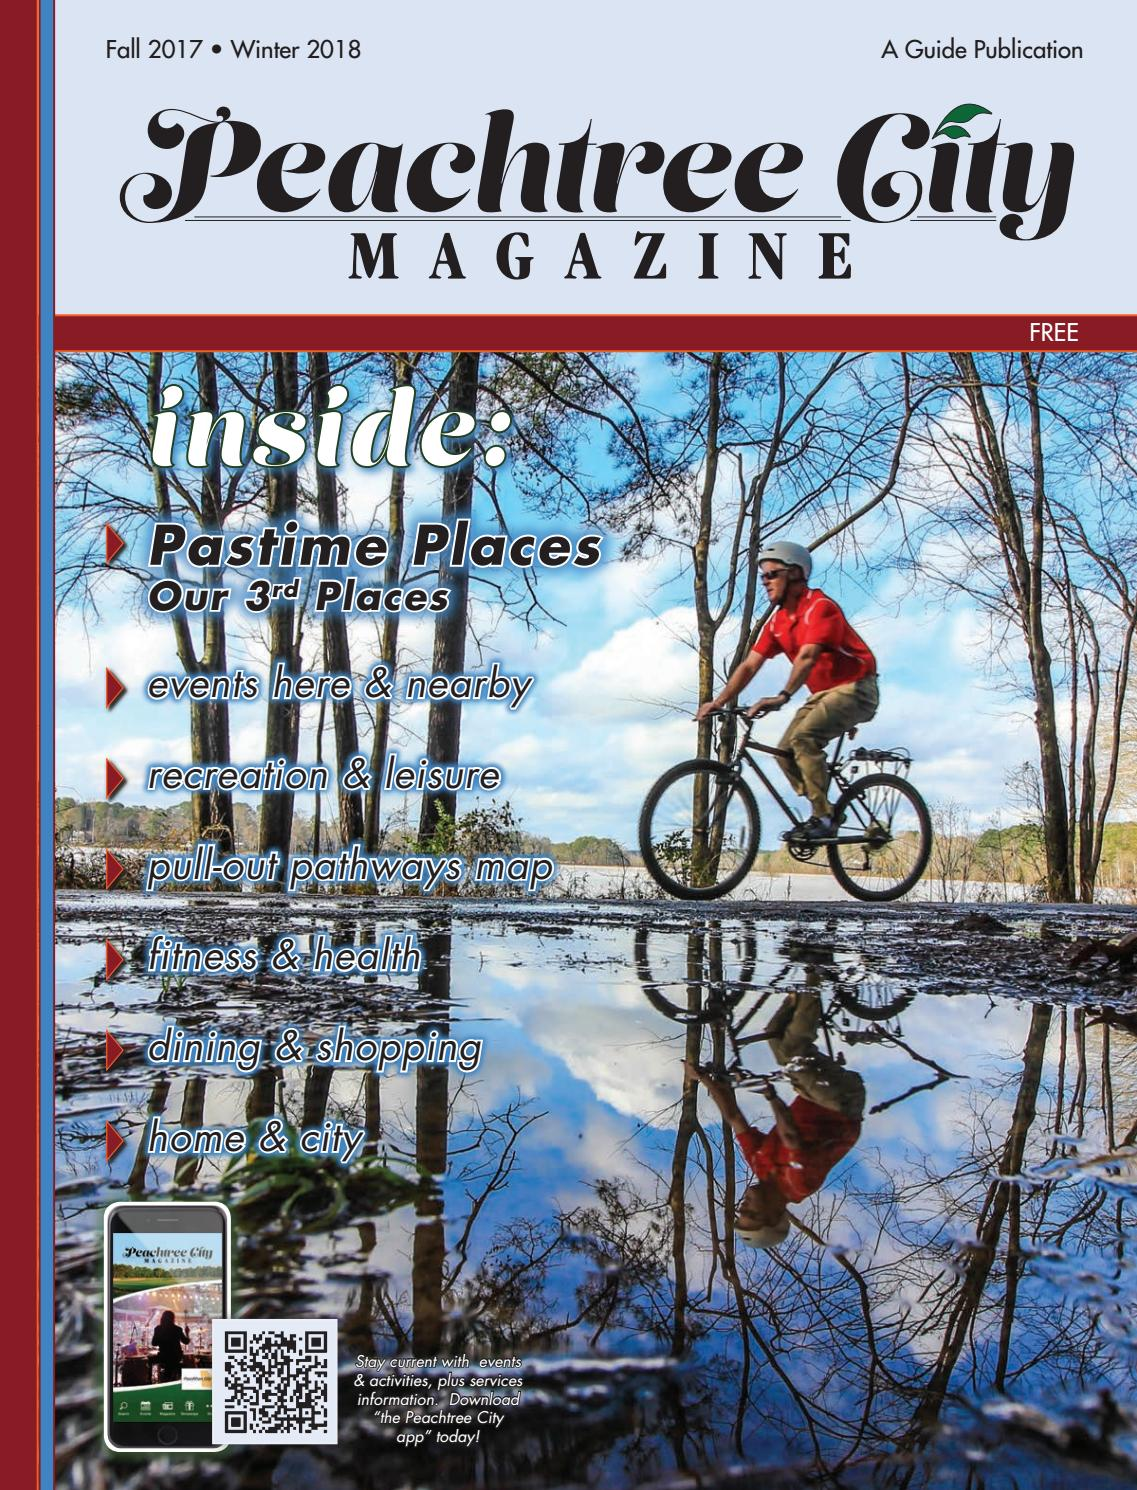 Peachtree City Magazine Fall Winter 2017 18 By Mike Nelson Issuu